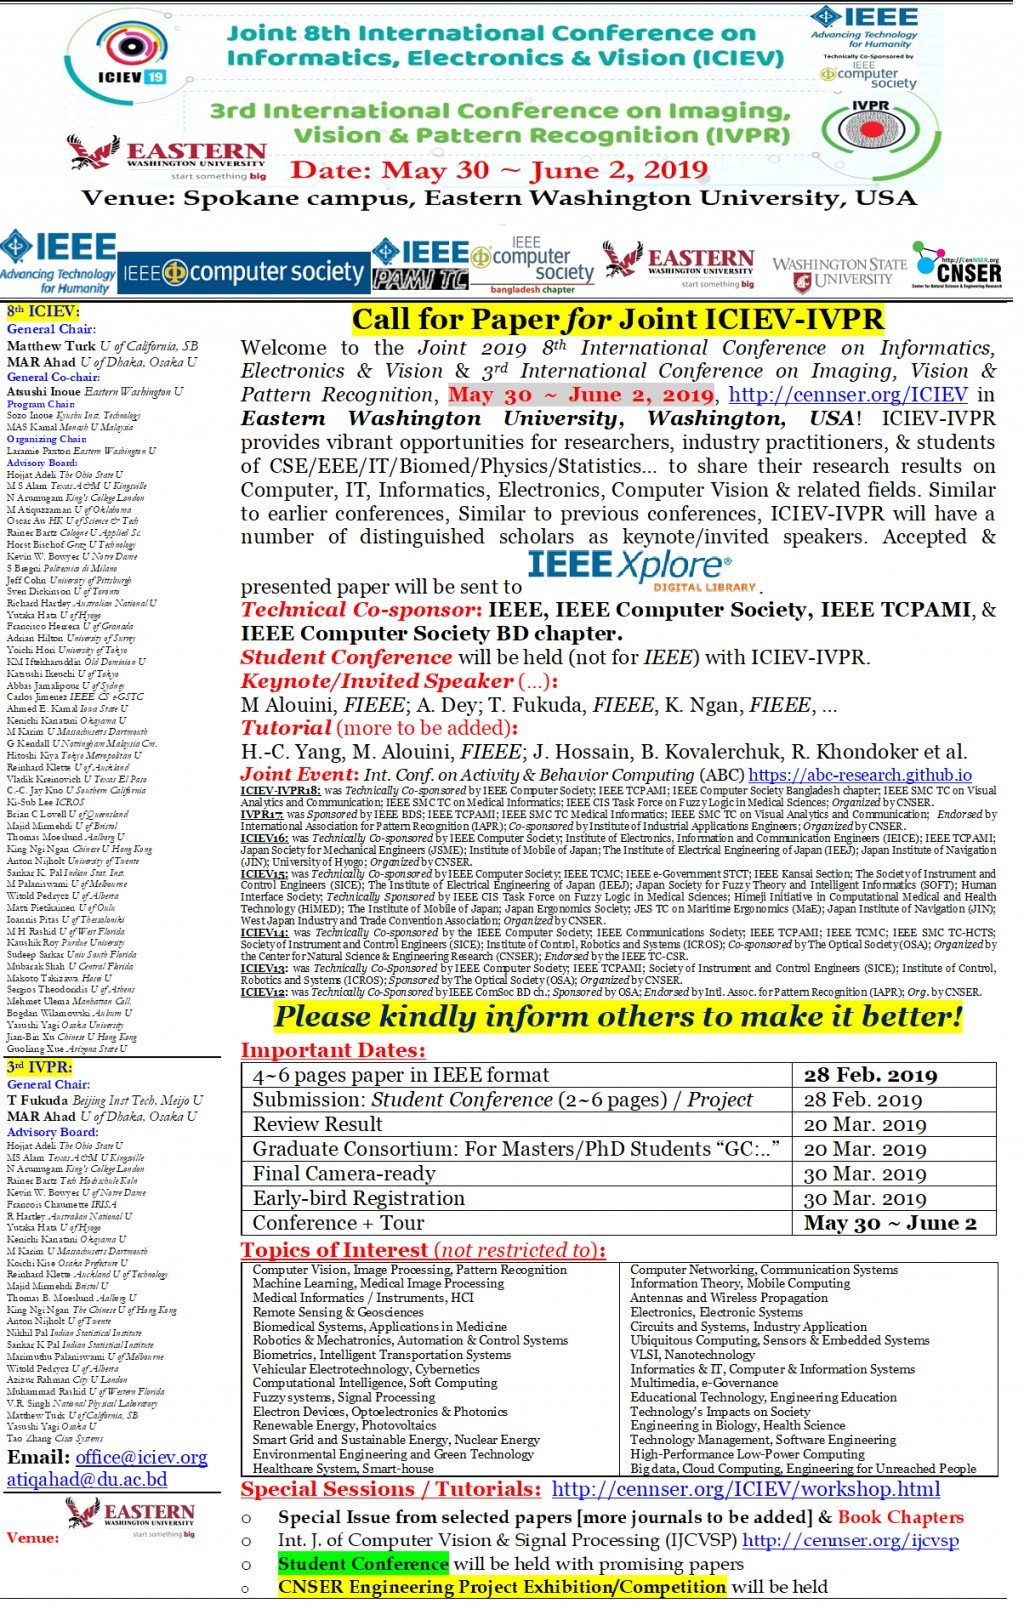 024 Cfpiciev Research Paper Ieee Papers In Computer Science Phenomenal Pdf Large